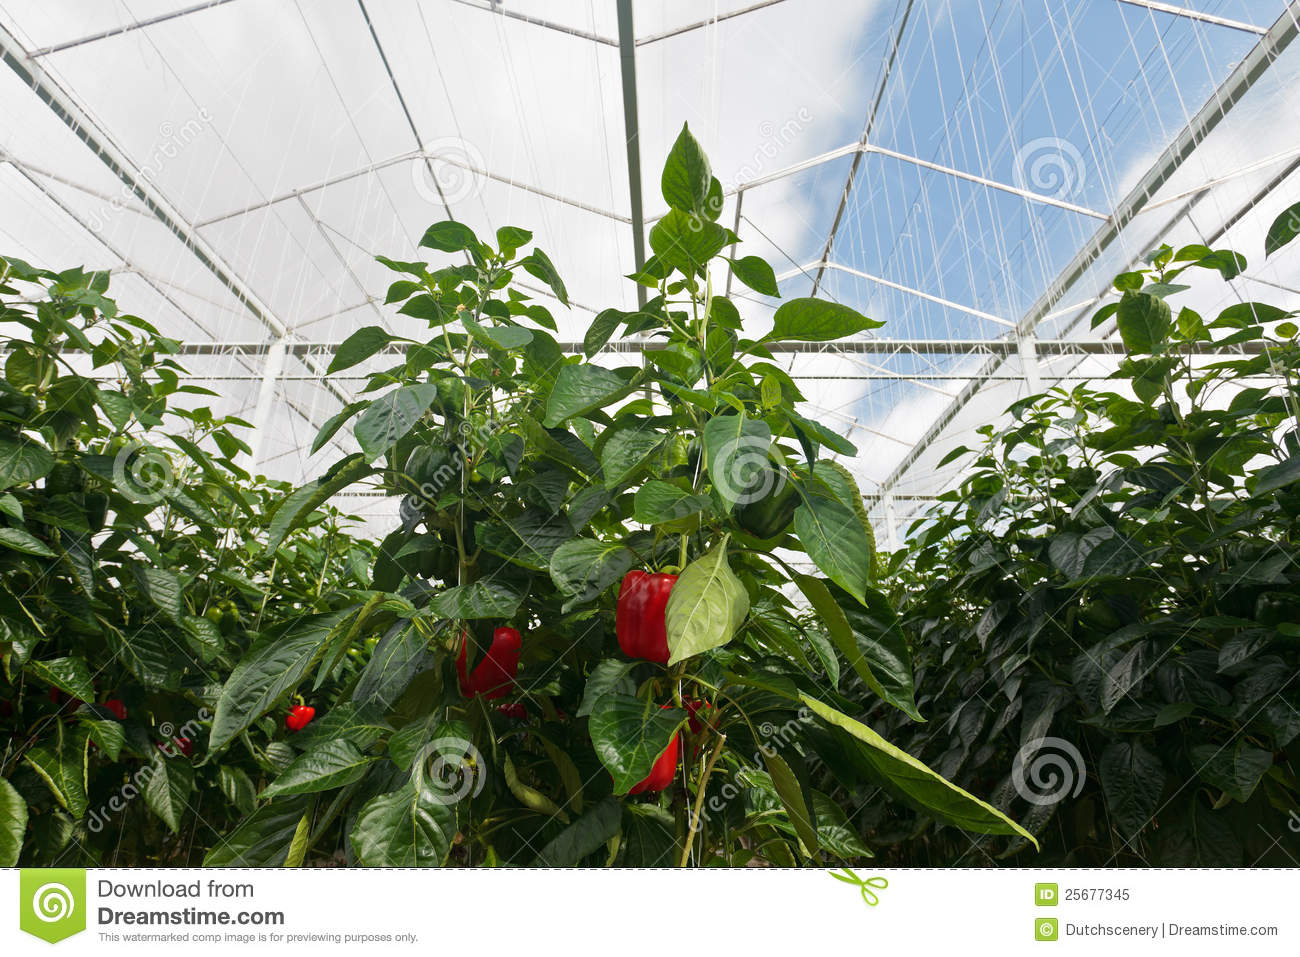 Red Bell Peppers Growing Inside A Greenhouse Royalty Free Stock.